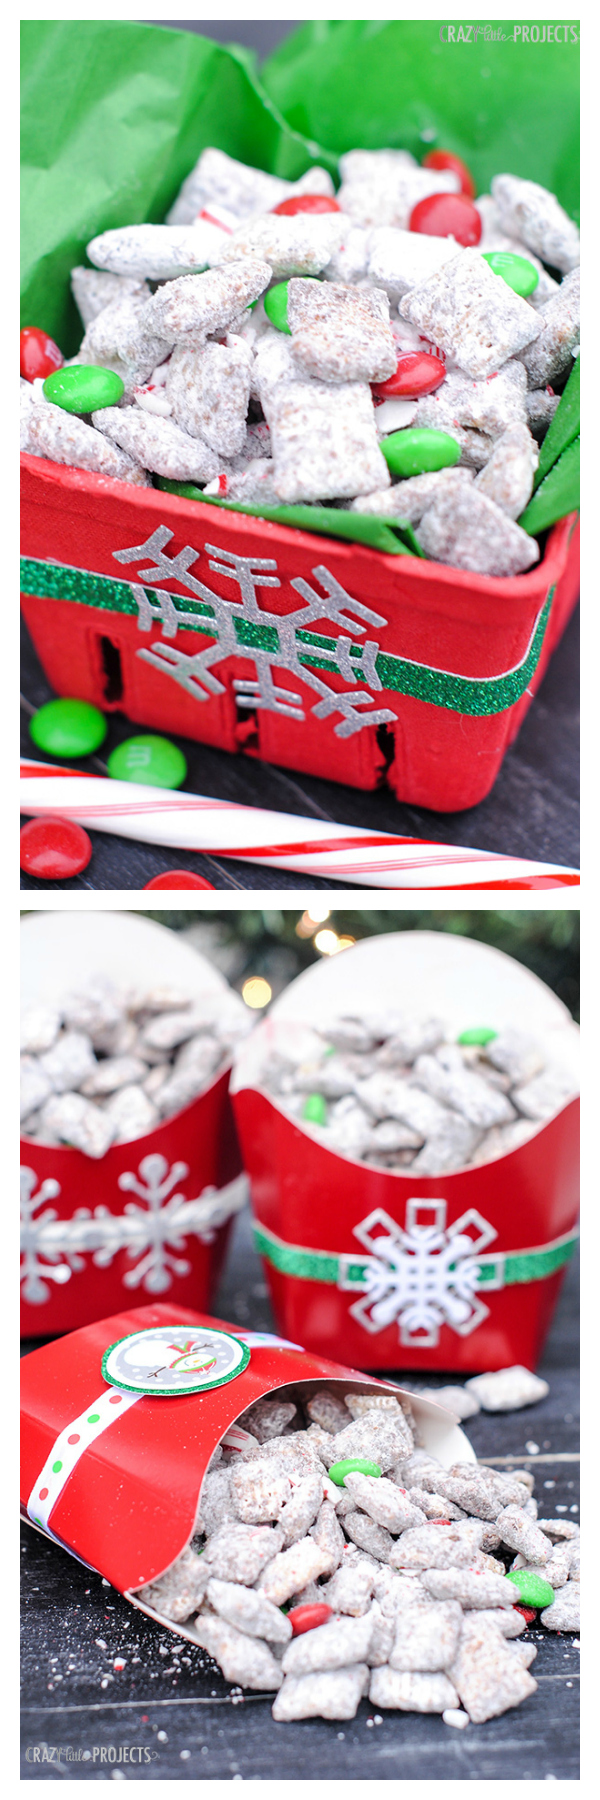 Chocolate Candy Cane Crunch Muddy Buddies and Cute Gift Packaging Ideas-These Christmas muddy buddies are so yummy and make a great gift for Christmas! #dessert #dessertrecipes #christmastreats